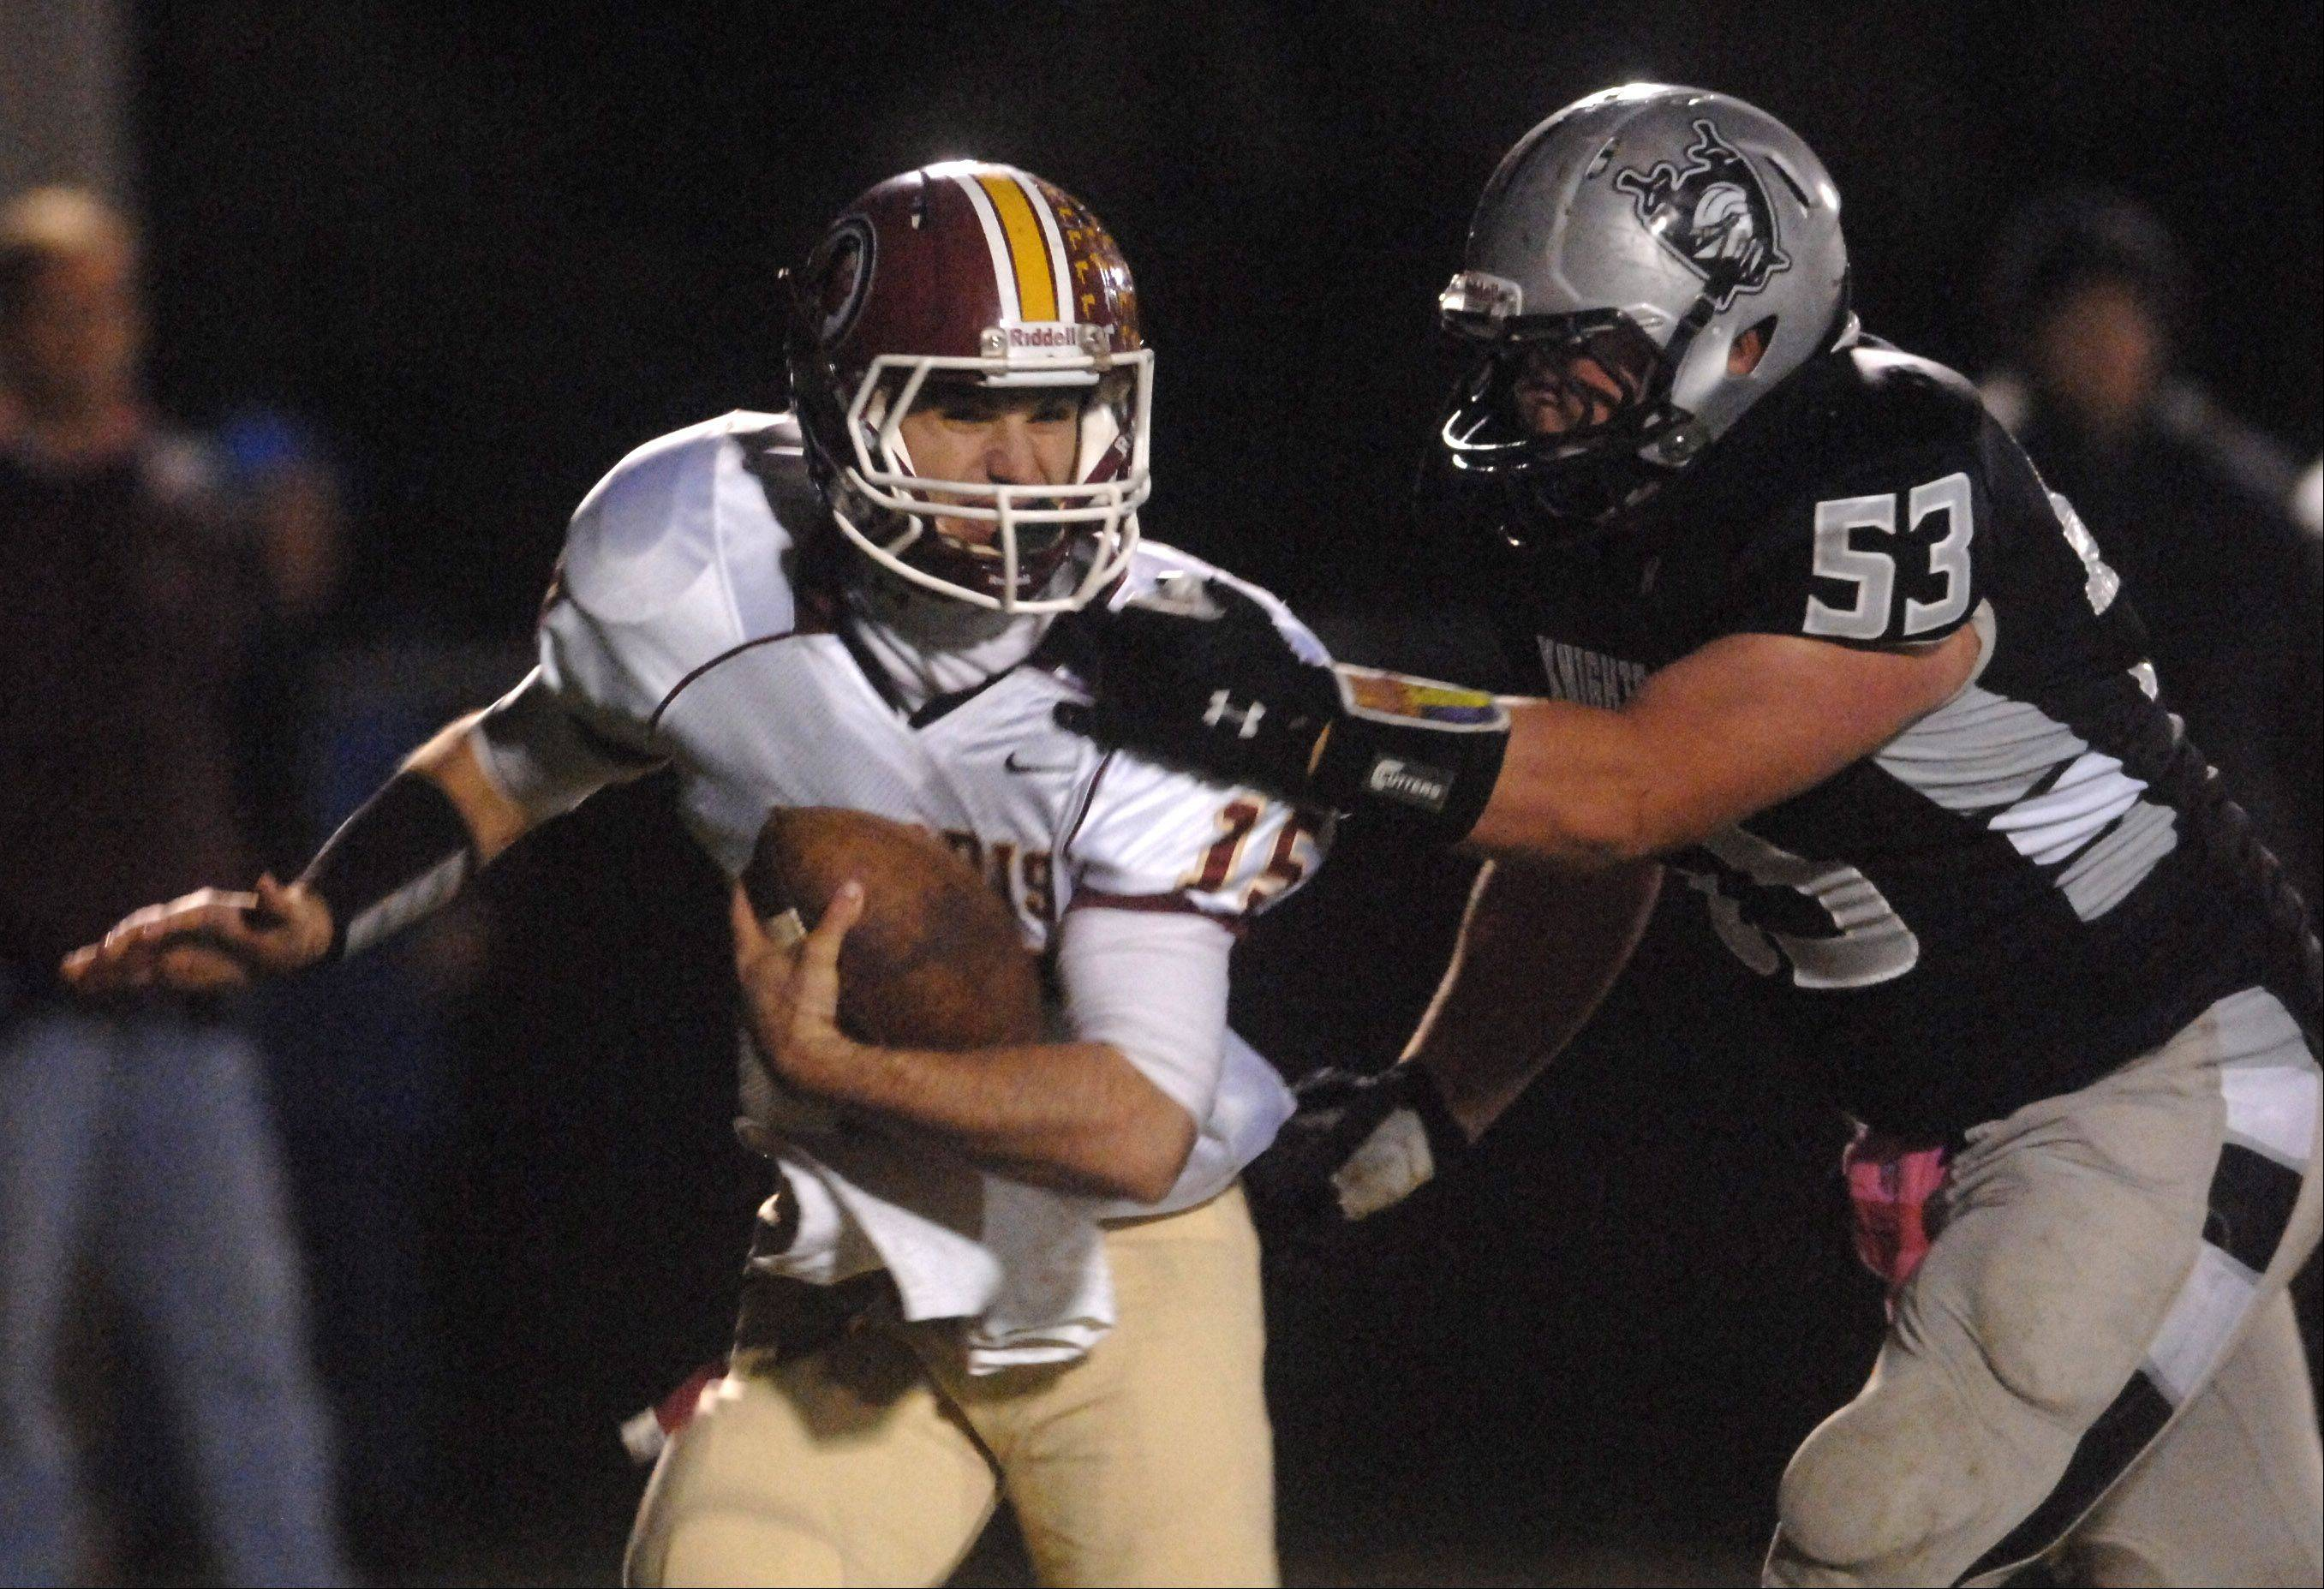 Kaneland's Justin Diddell sacks Morris quarterback Zach Cinnamon during Friday's game in Maple Park.